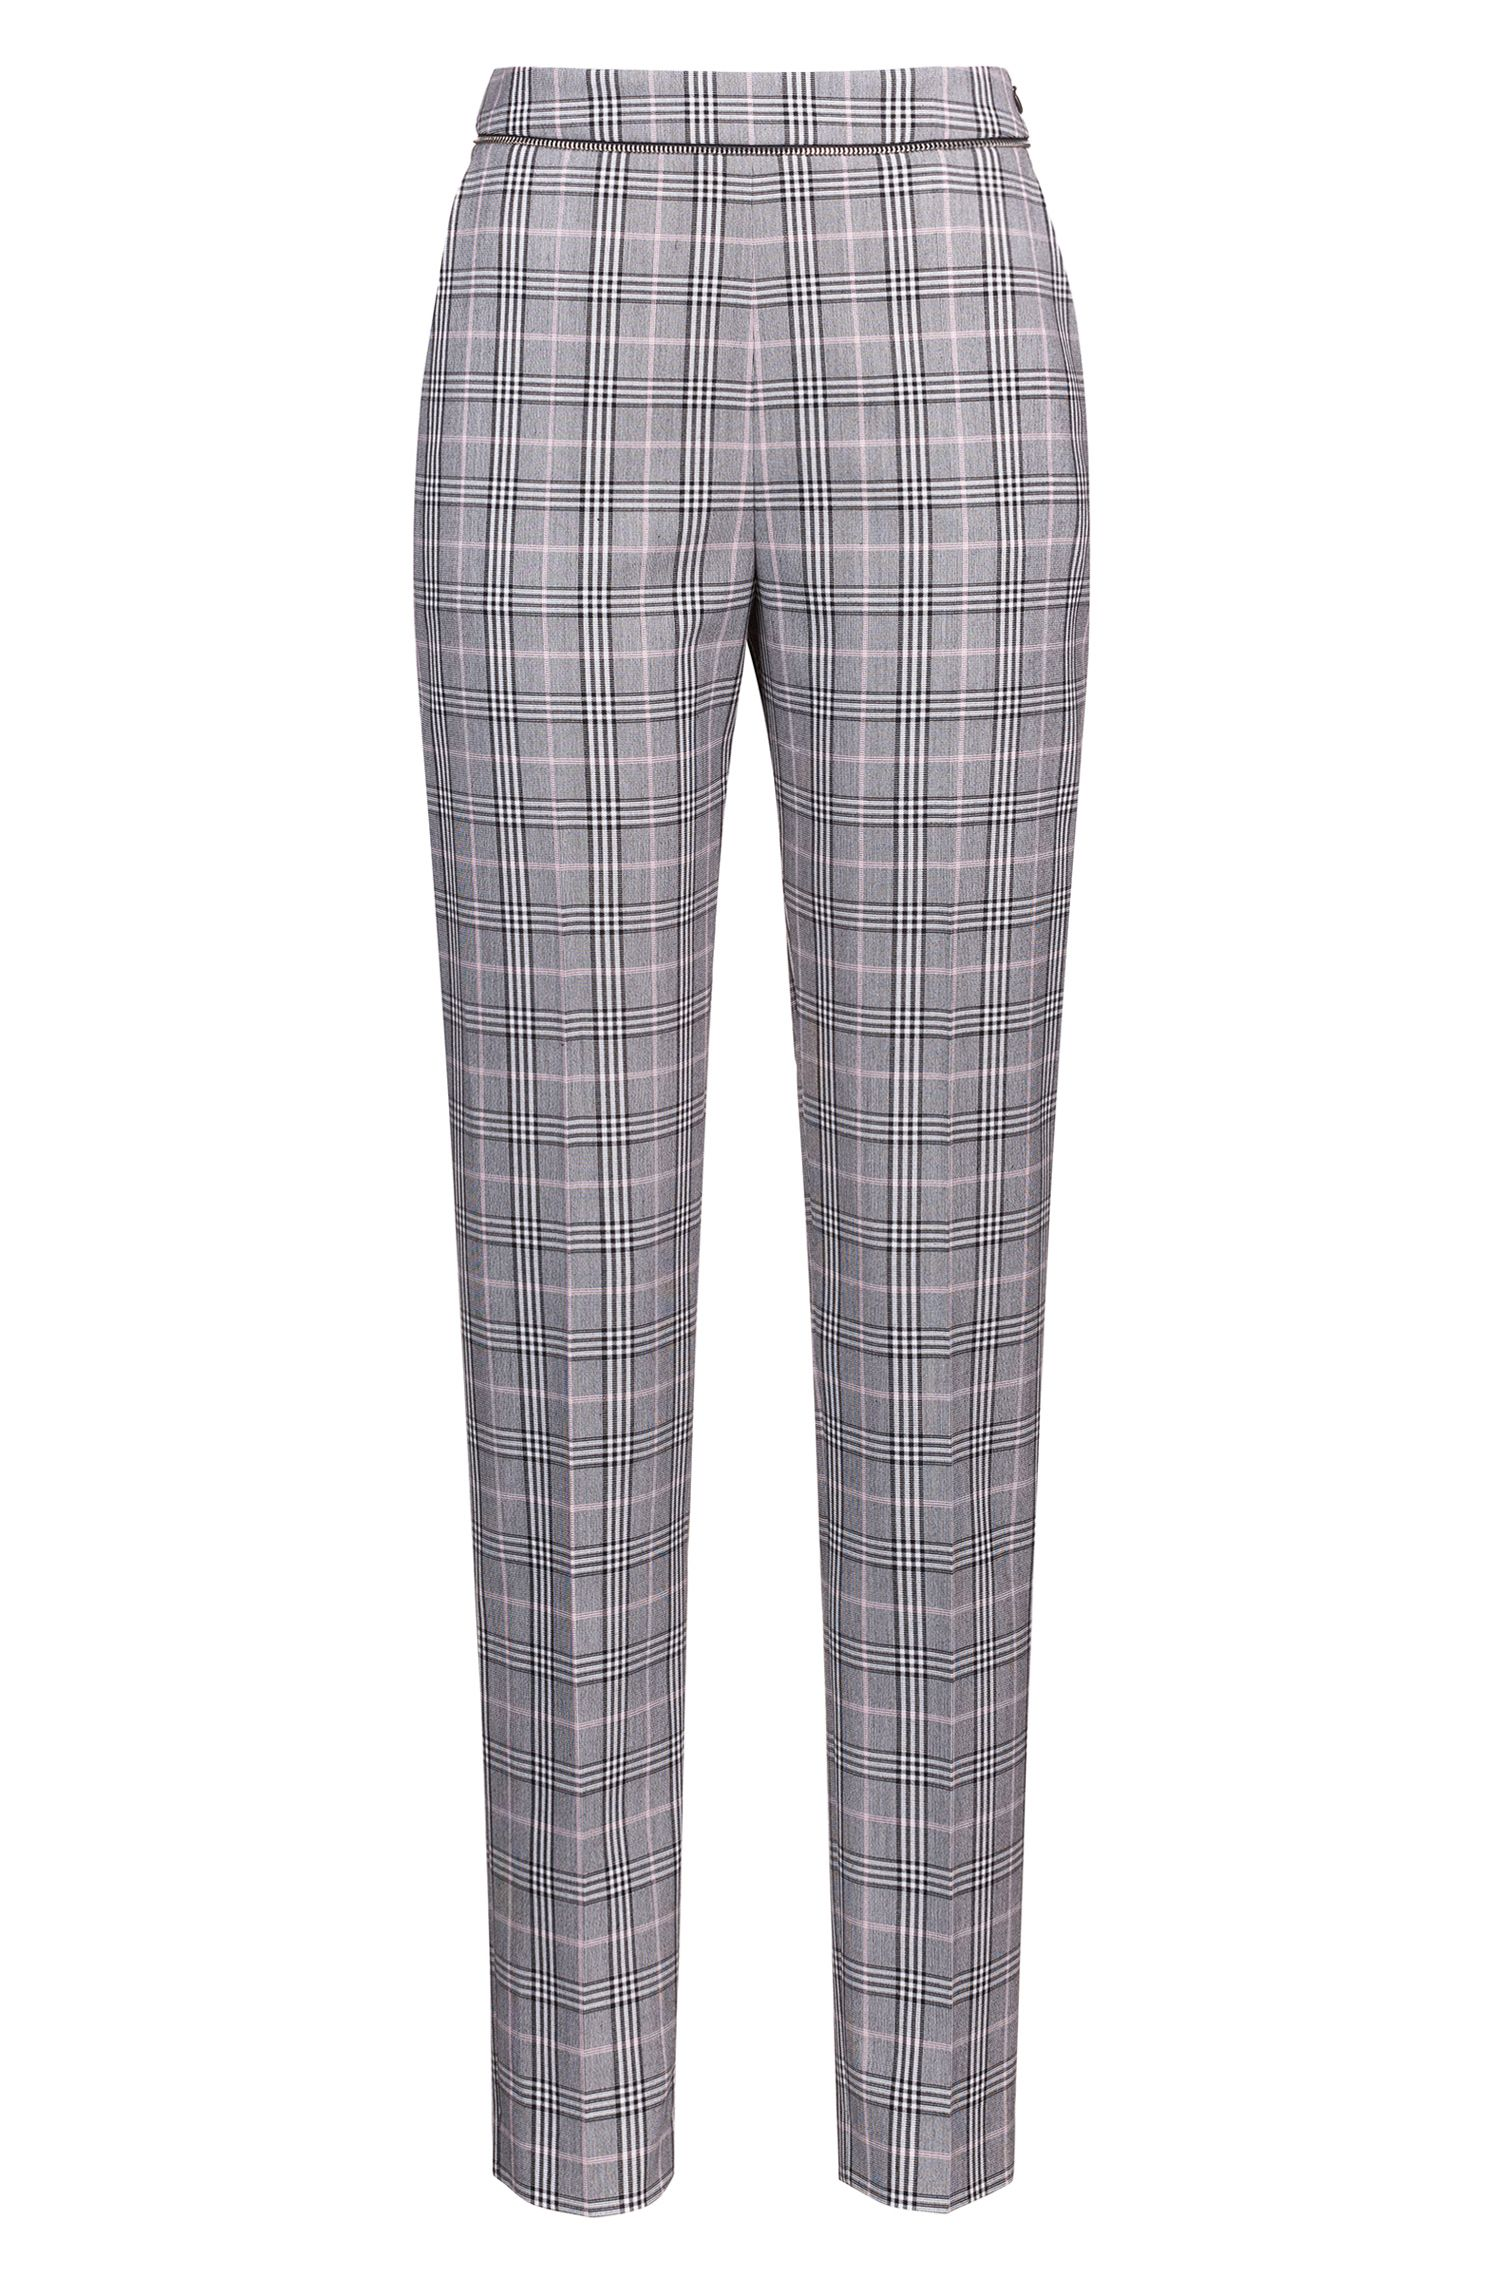 Checked cigarette trousers with zip-detail waistband, Patterned